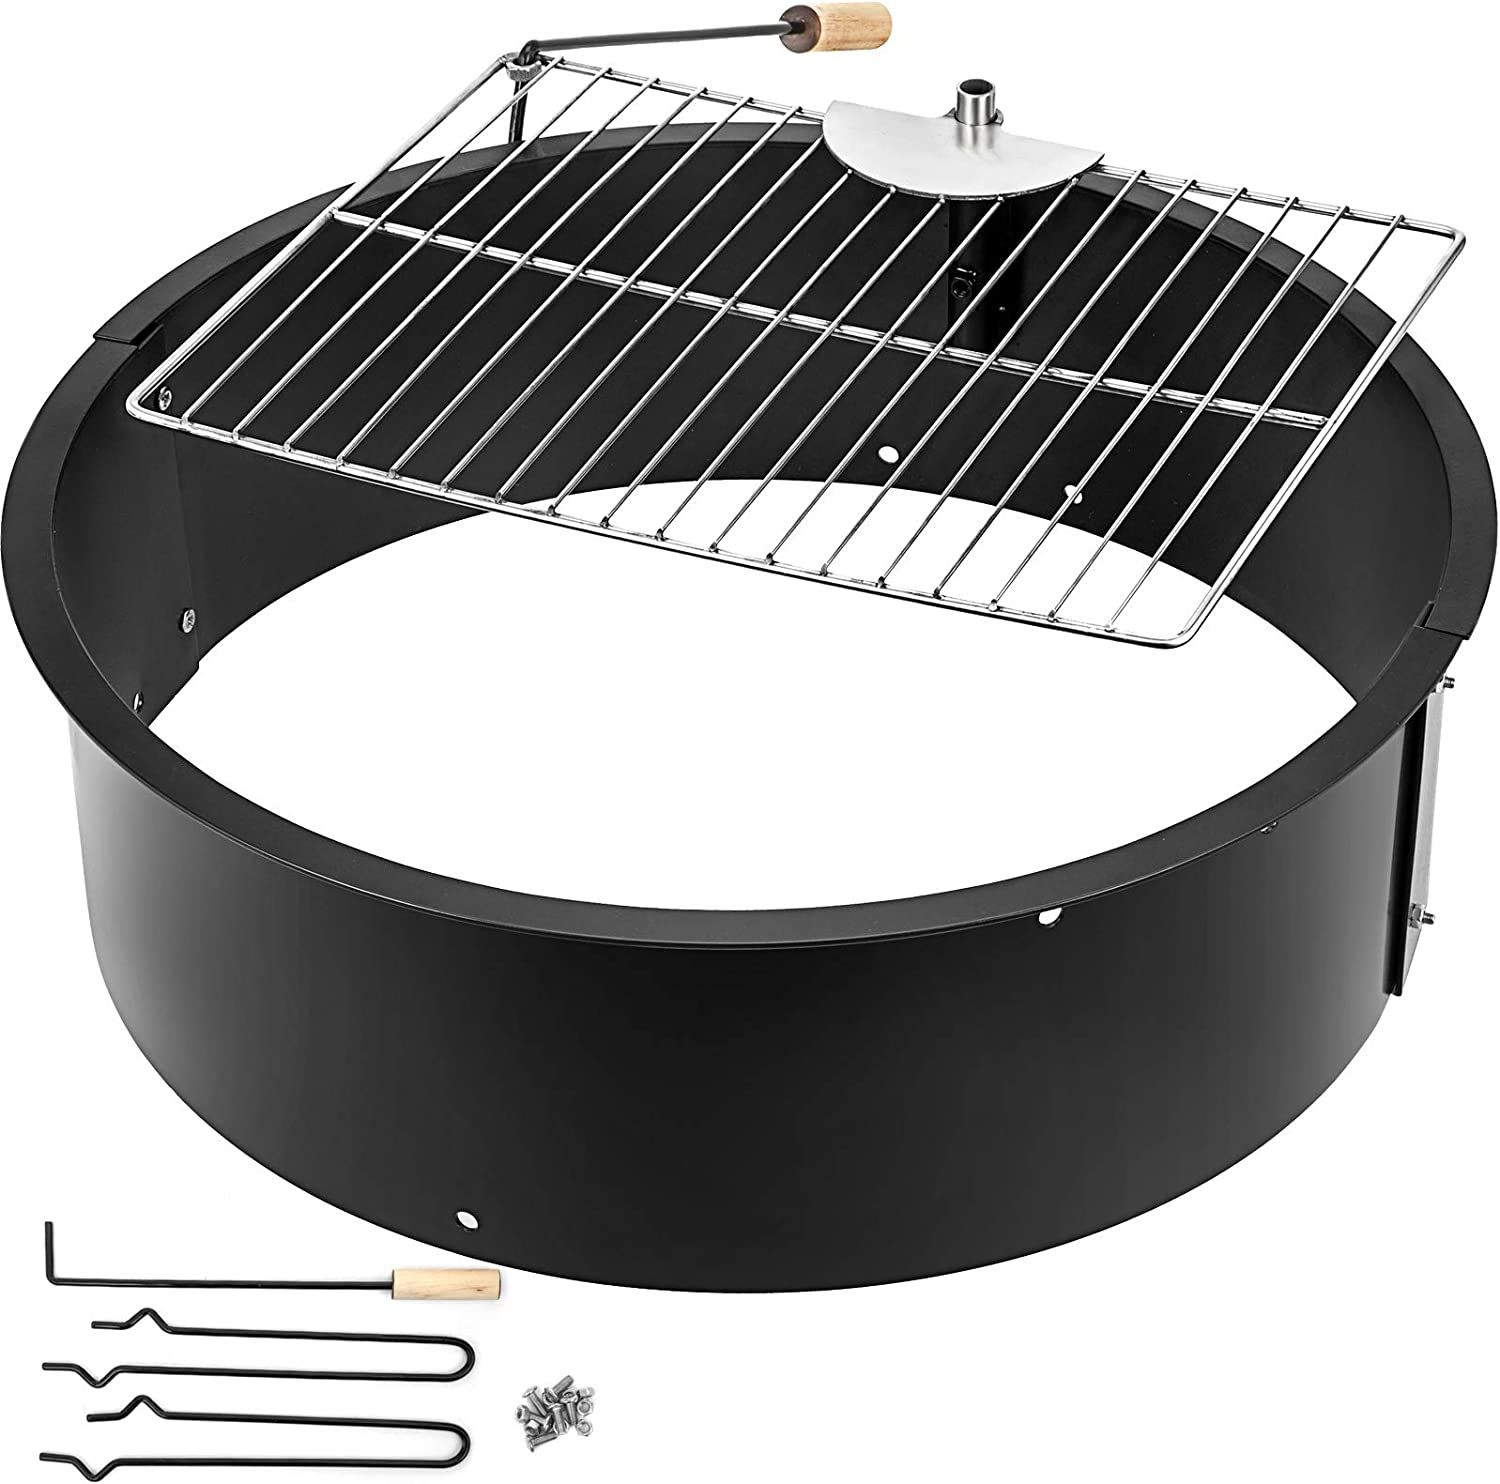 VBENLEM Fire Pit Ring 25.6 Inch Solid Steel with Detachable Grill 3.0mm Thick with Camping Park Grill for Outdoor Camping